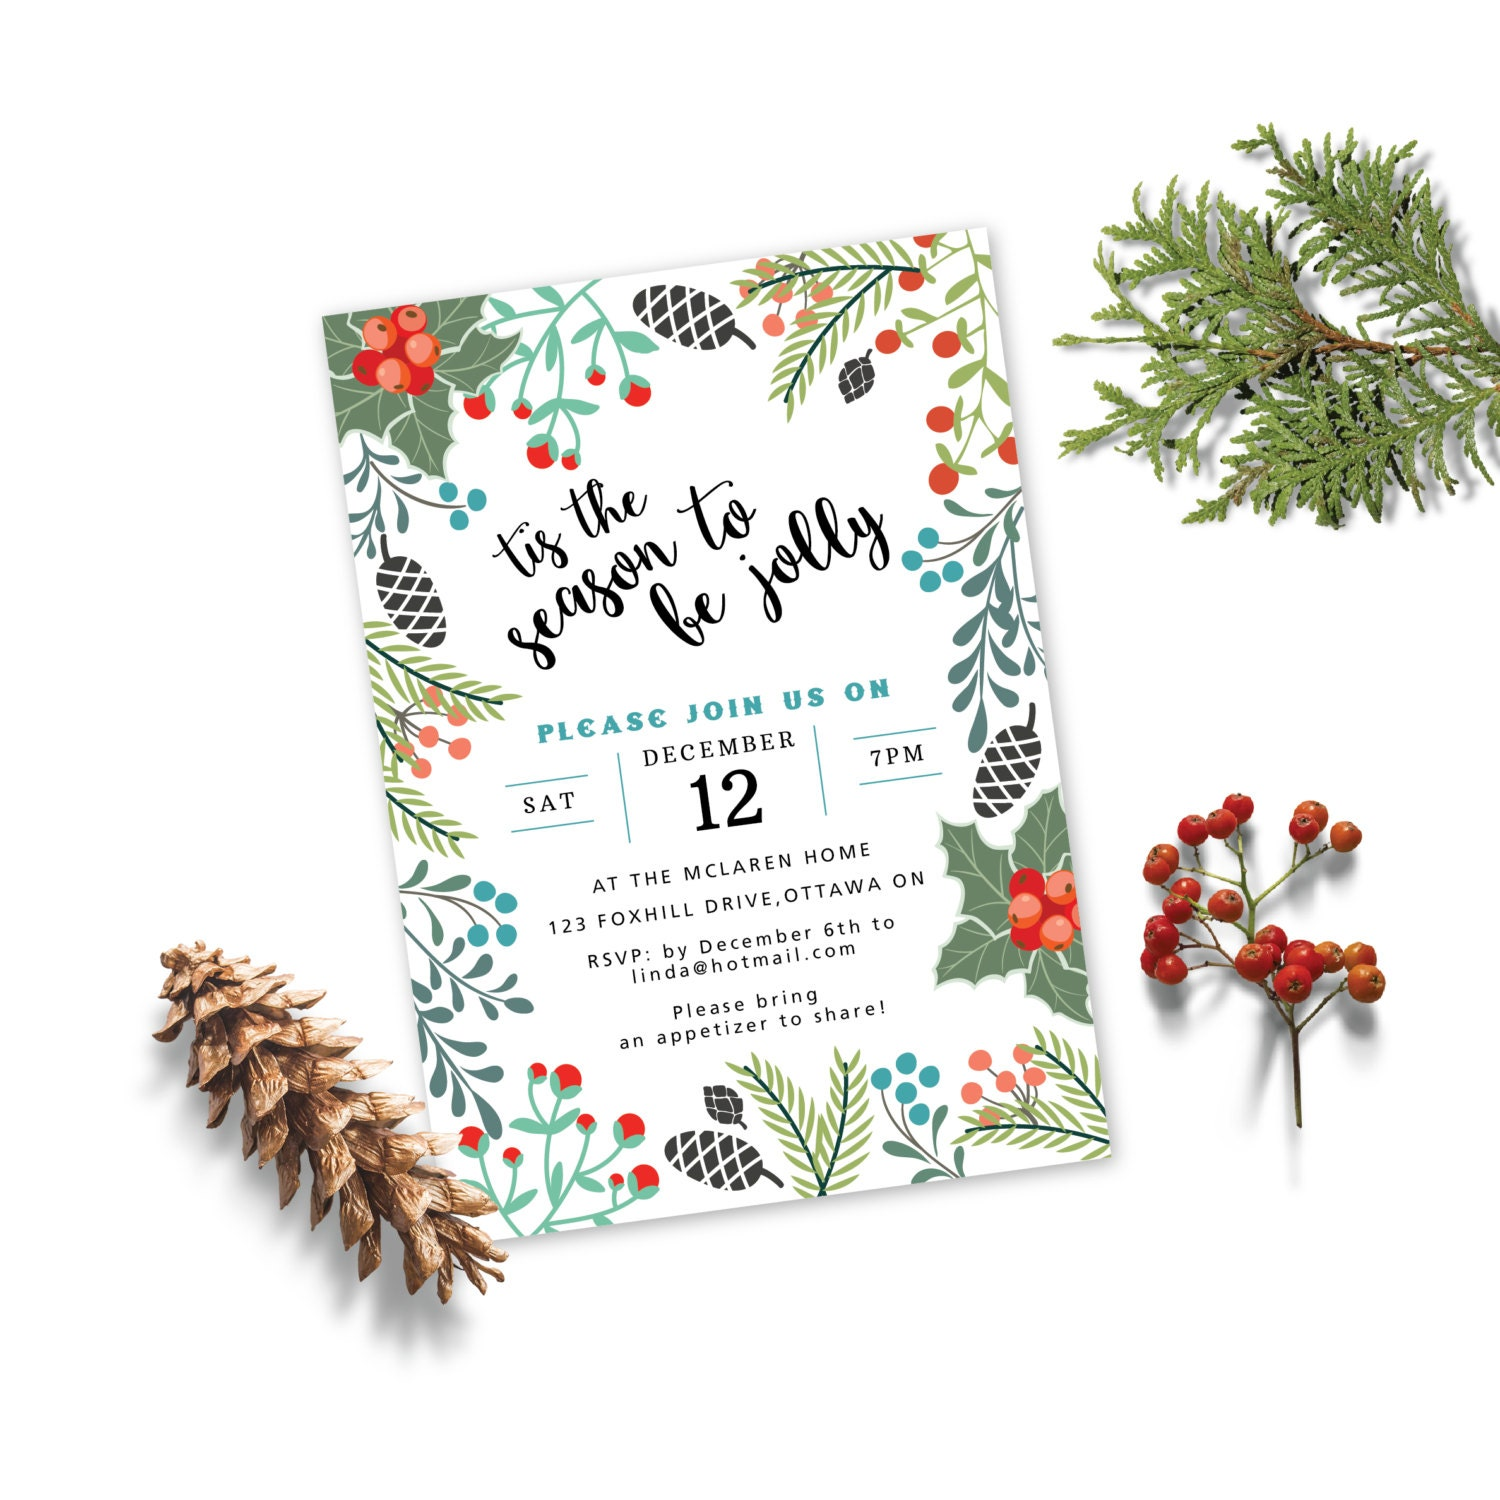 holiday party invitation christmas party invitation christmas holiday party invitation christmas party invitation christmas invite printable holiday invitation woodland holiday invite